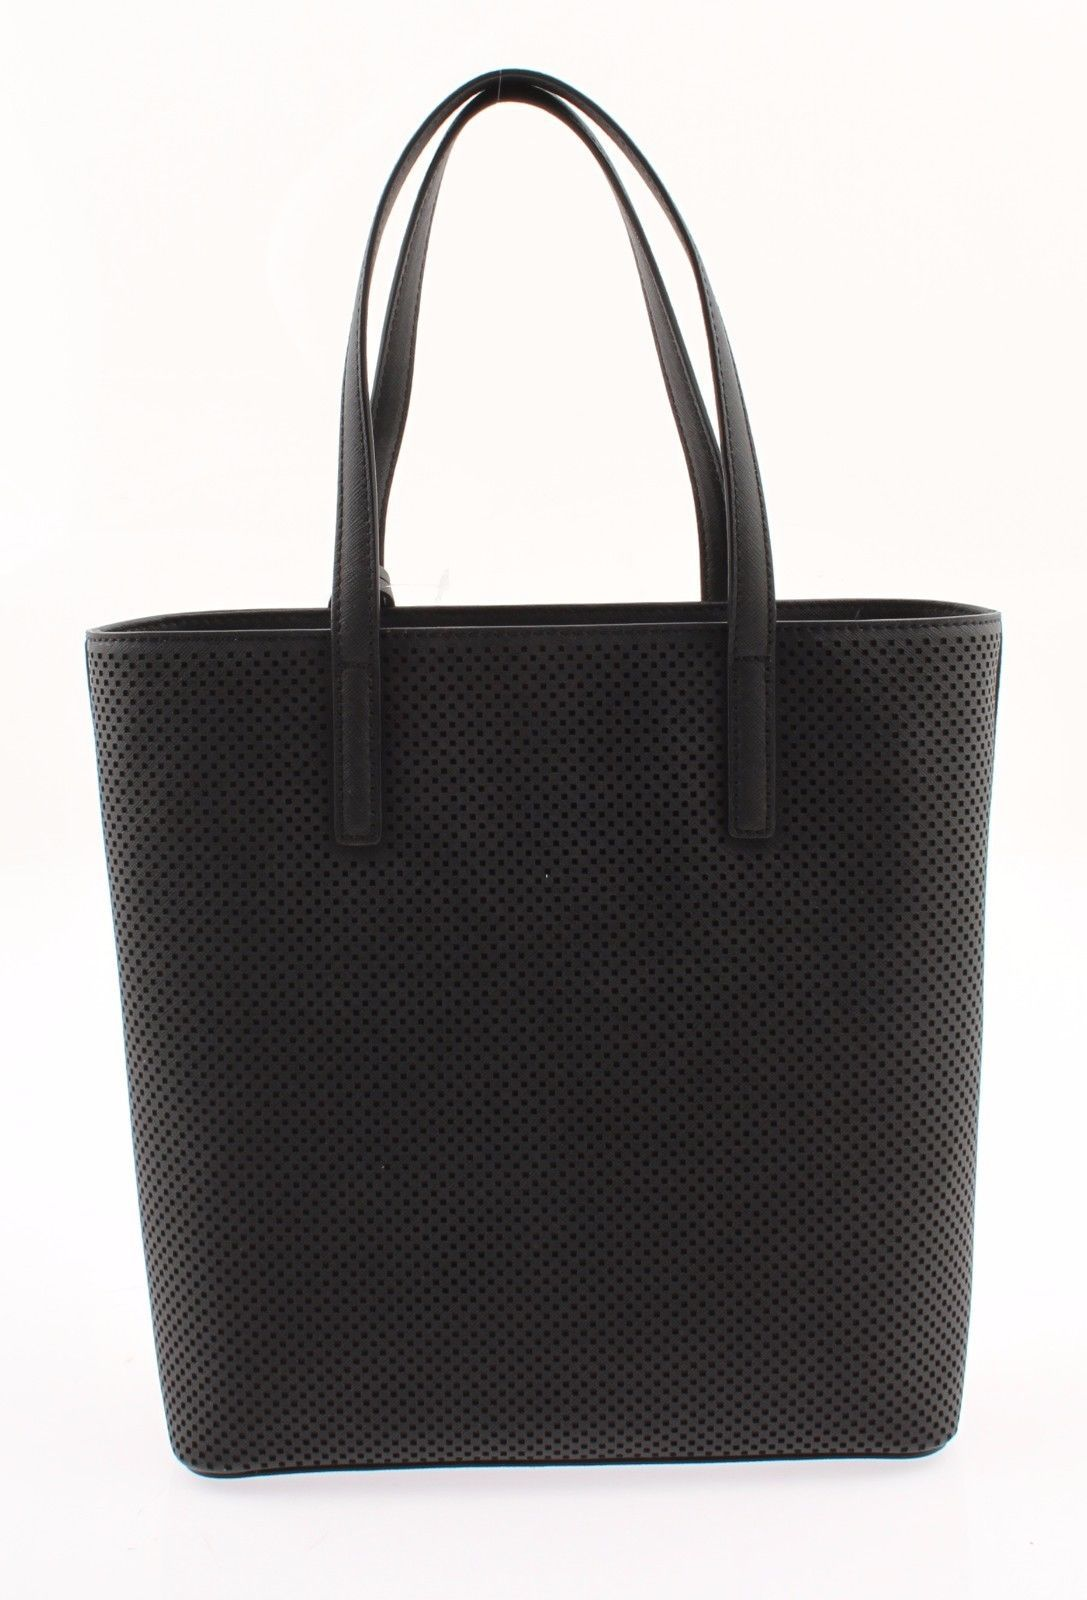 72084e4b3b99 ... NWT Authentic Michael Kors Hayley Medium North South Top Zip Leather  Tote Black ...